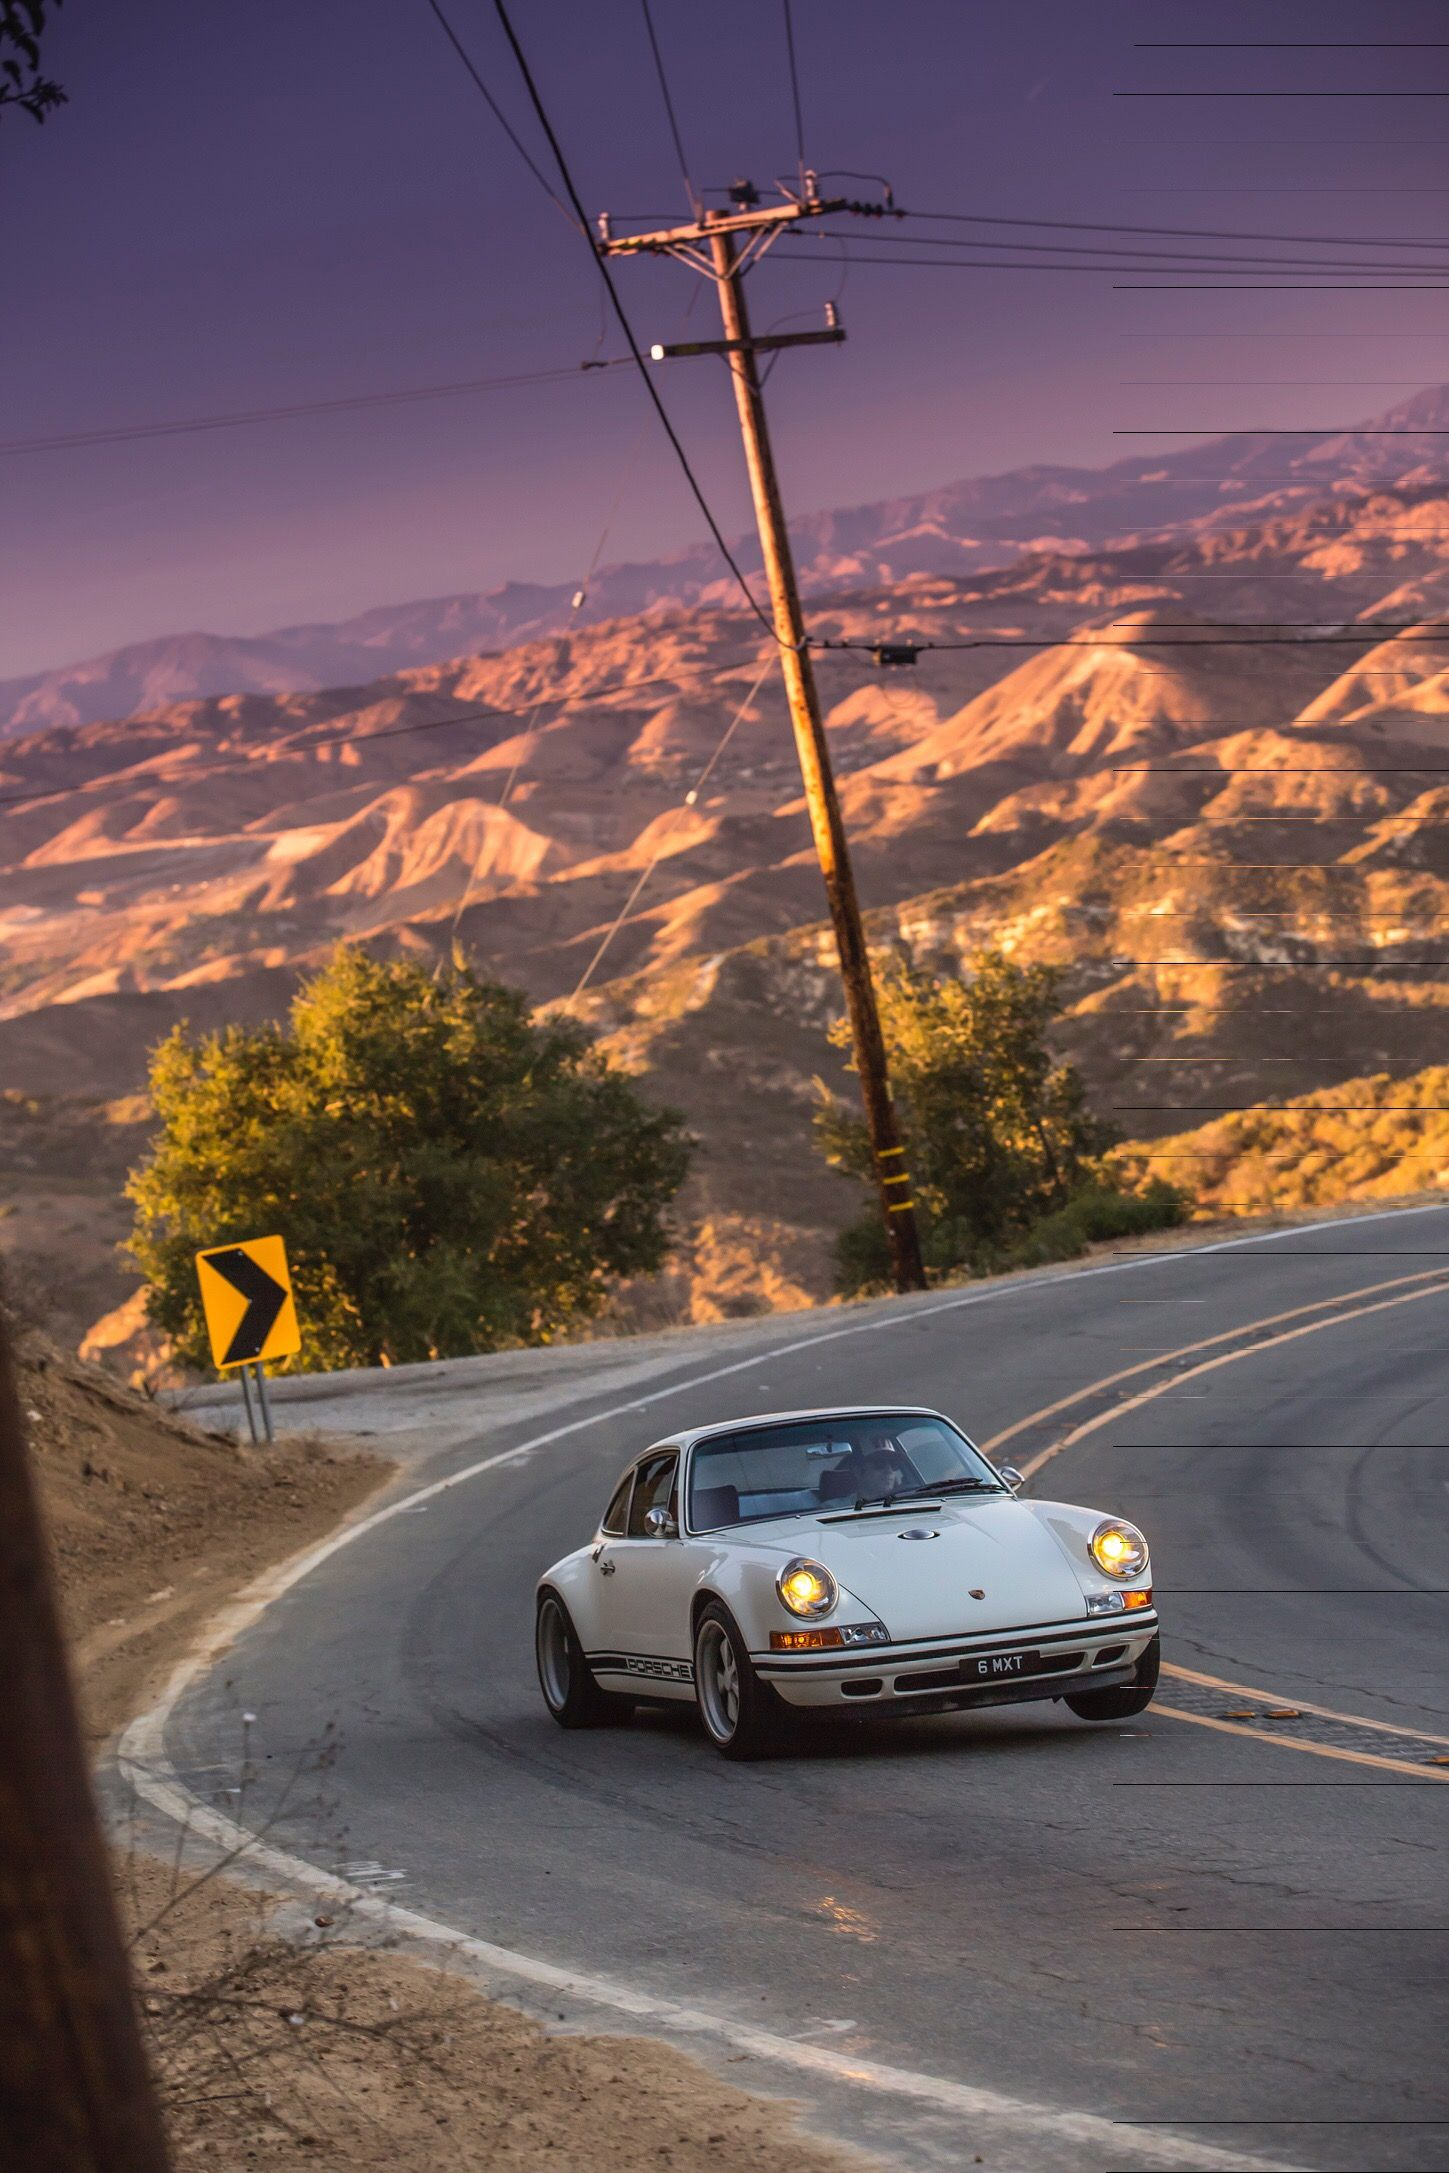 Any Singer available for sale? - Rennlist - Porsche Discussion Forums